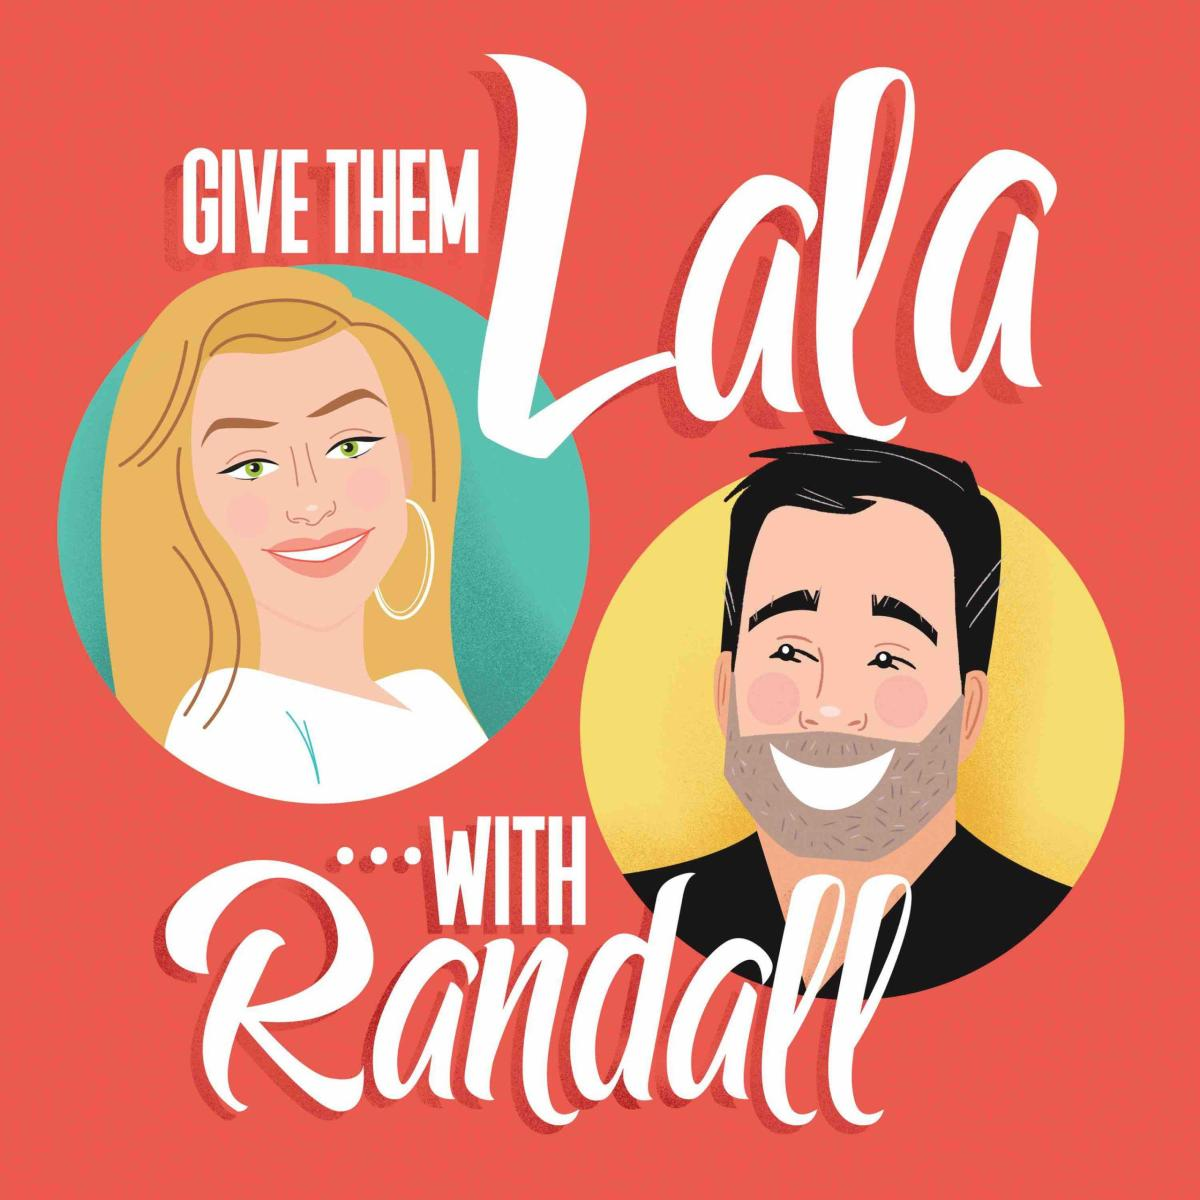 Give Them Lala... with Randall